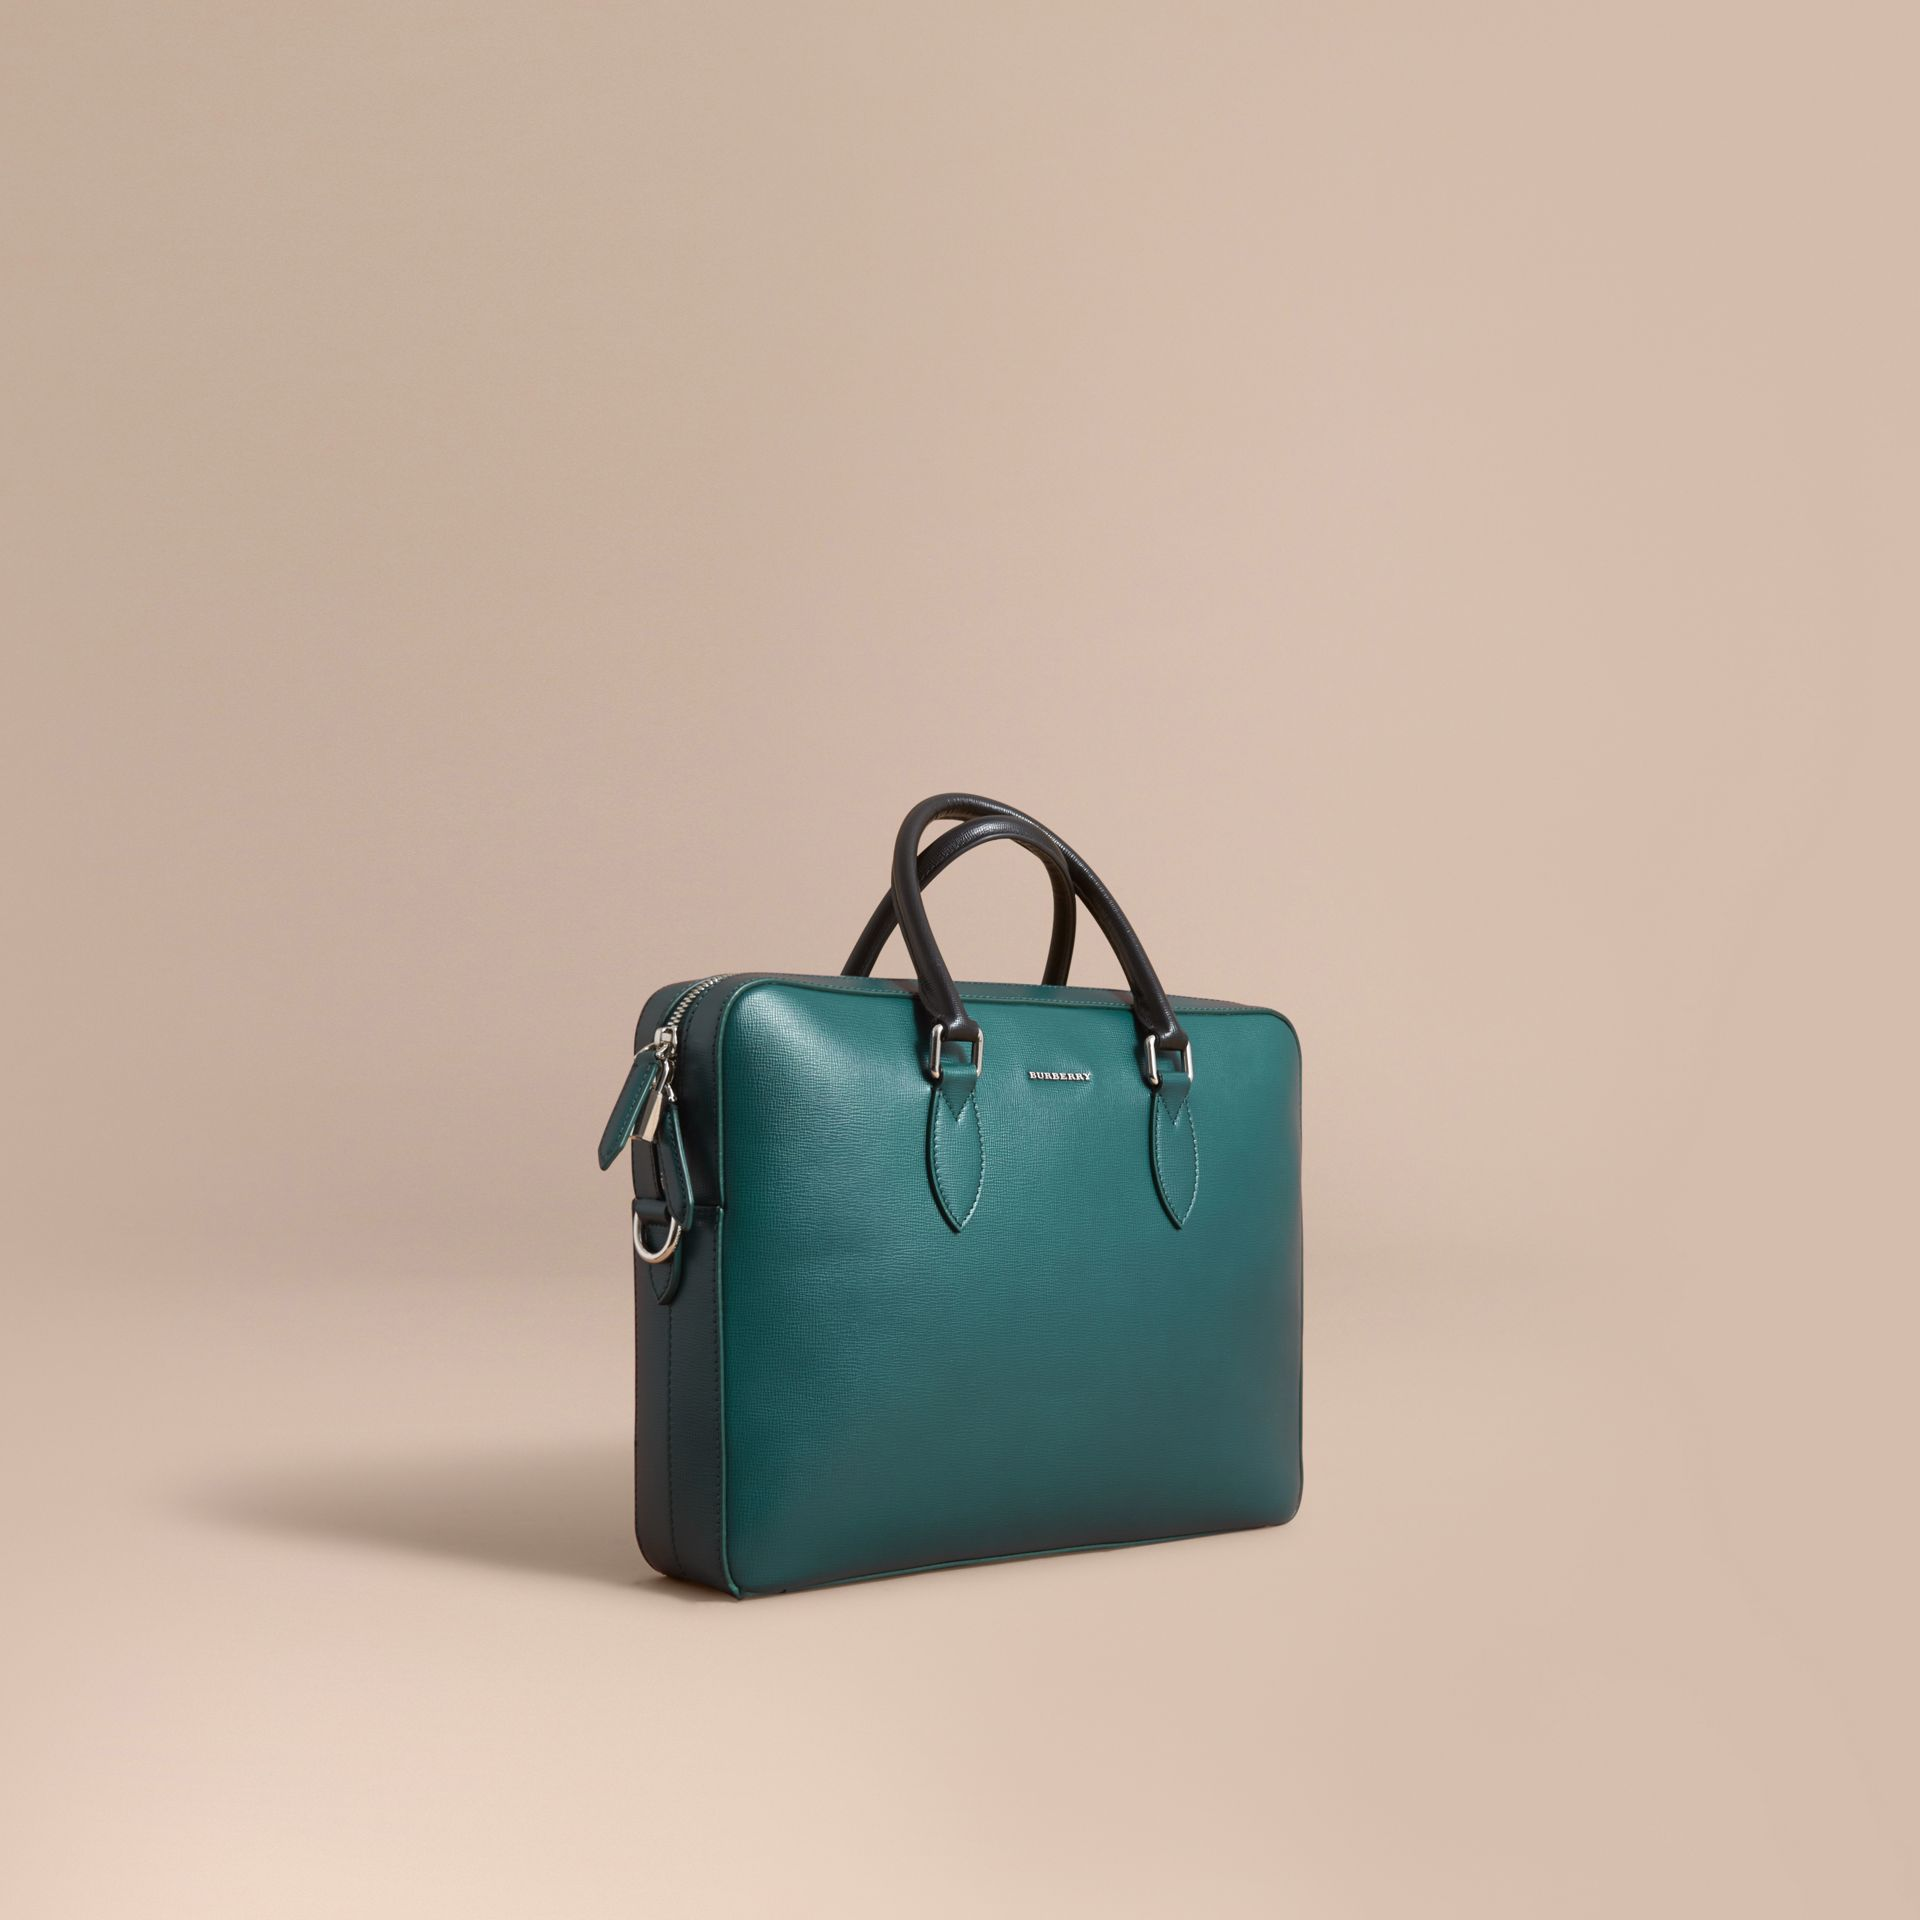 London Leather Briefcase in Dark Teal/black - Men | Burberry - gallery image 1